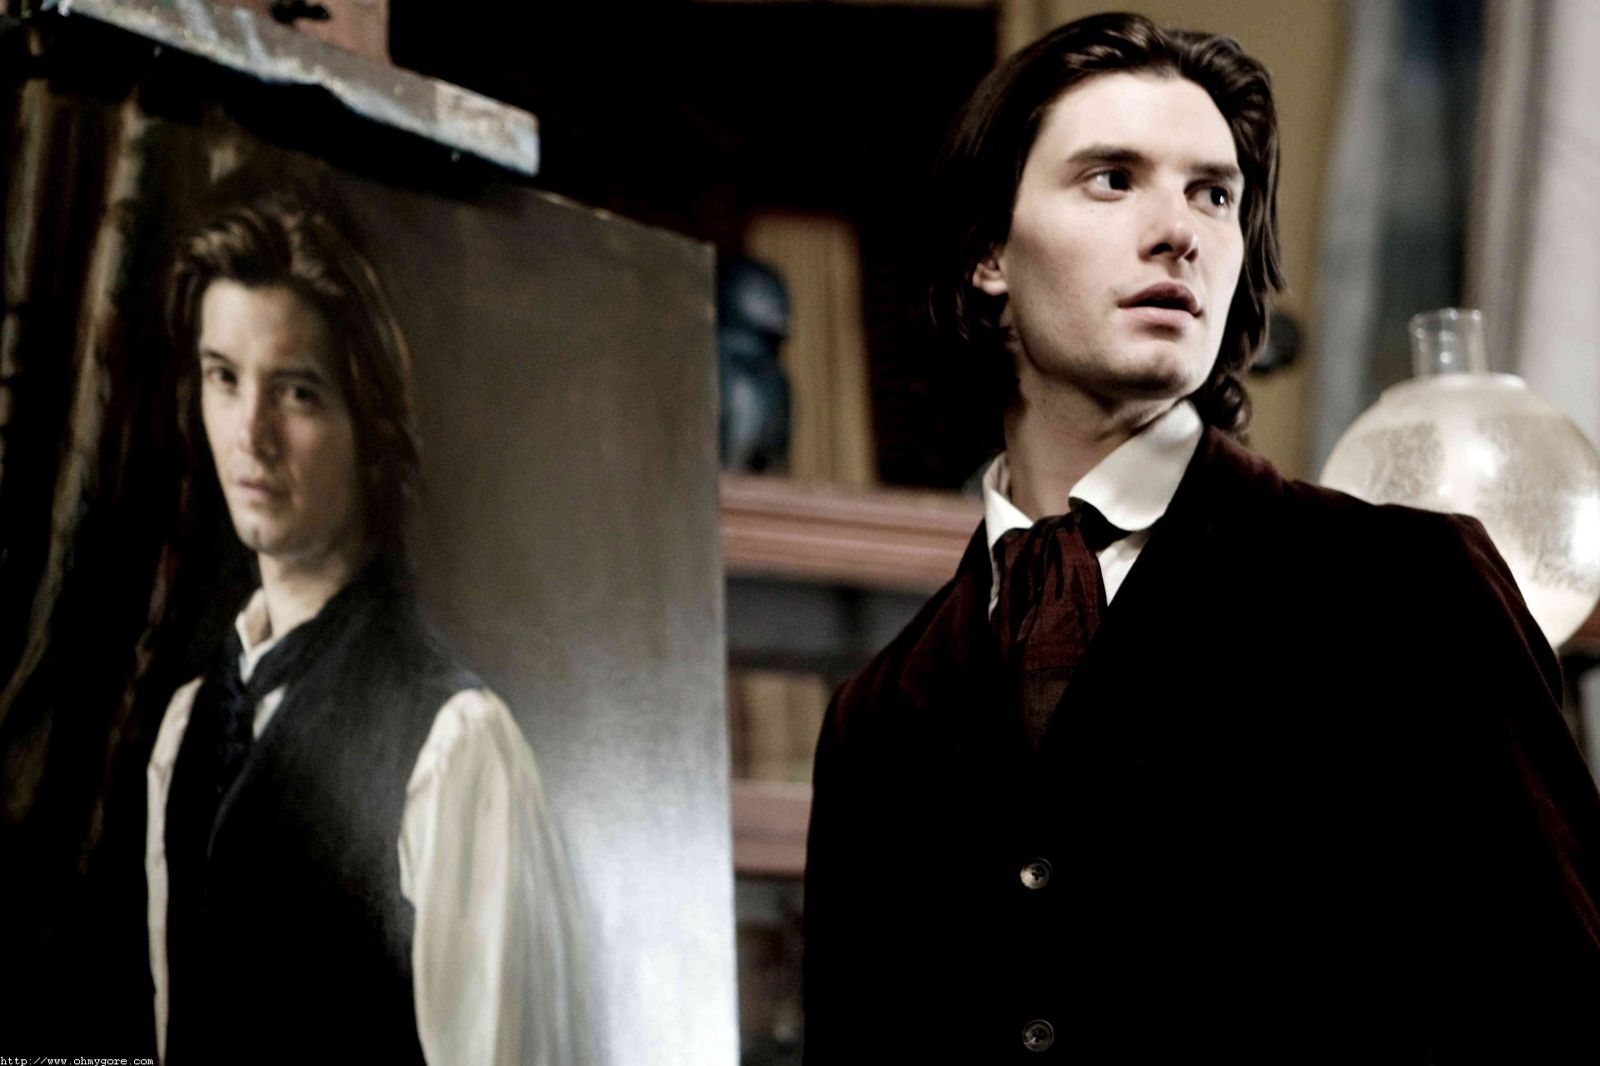 an analysis of the main characters of oscar wildes the portrait of dorian gray and their psyche